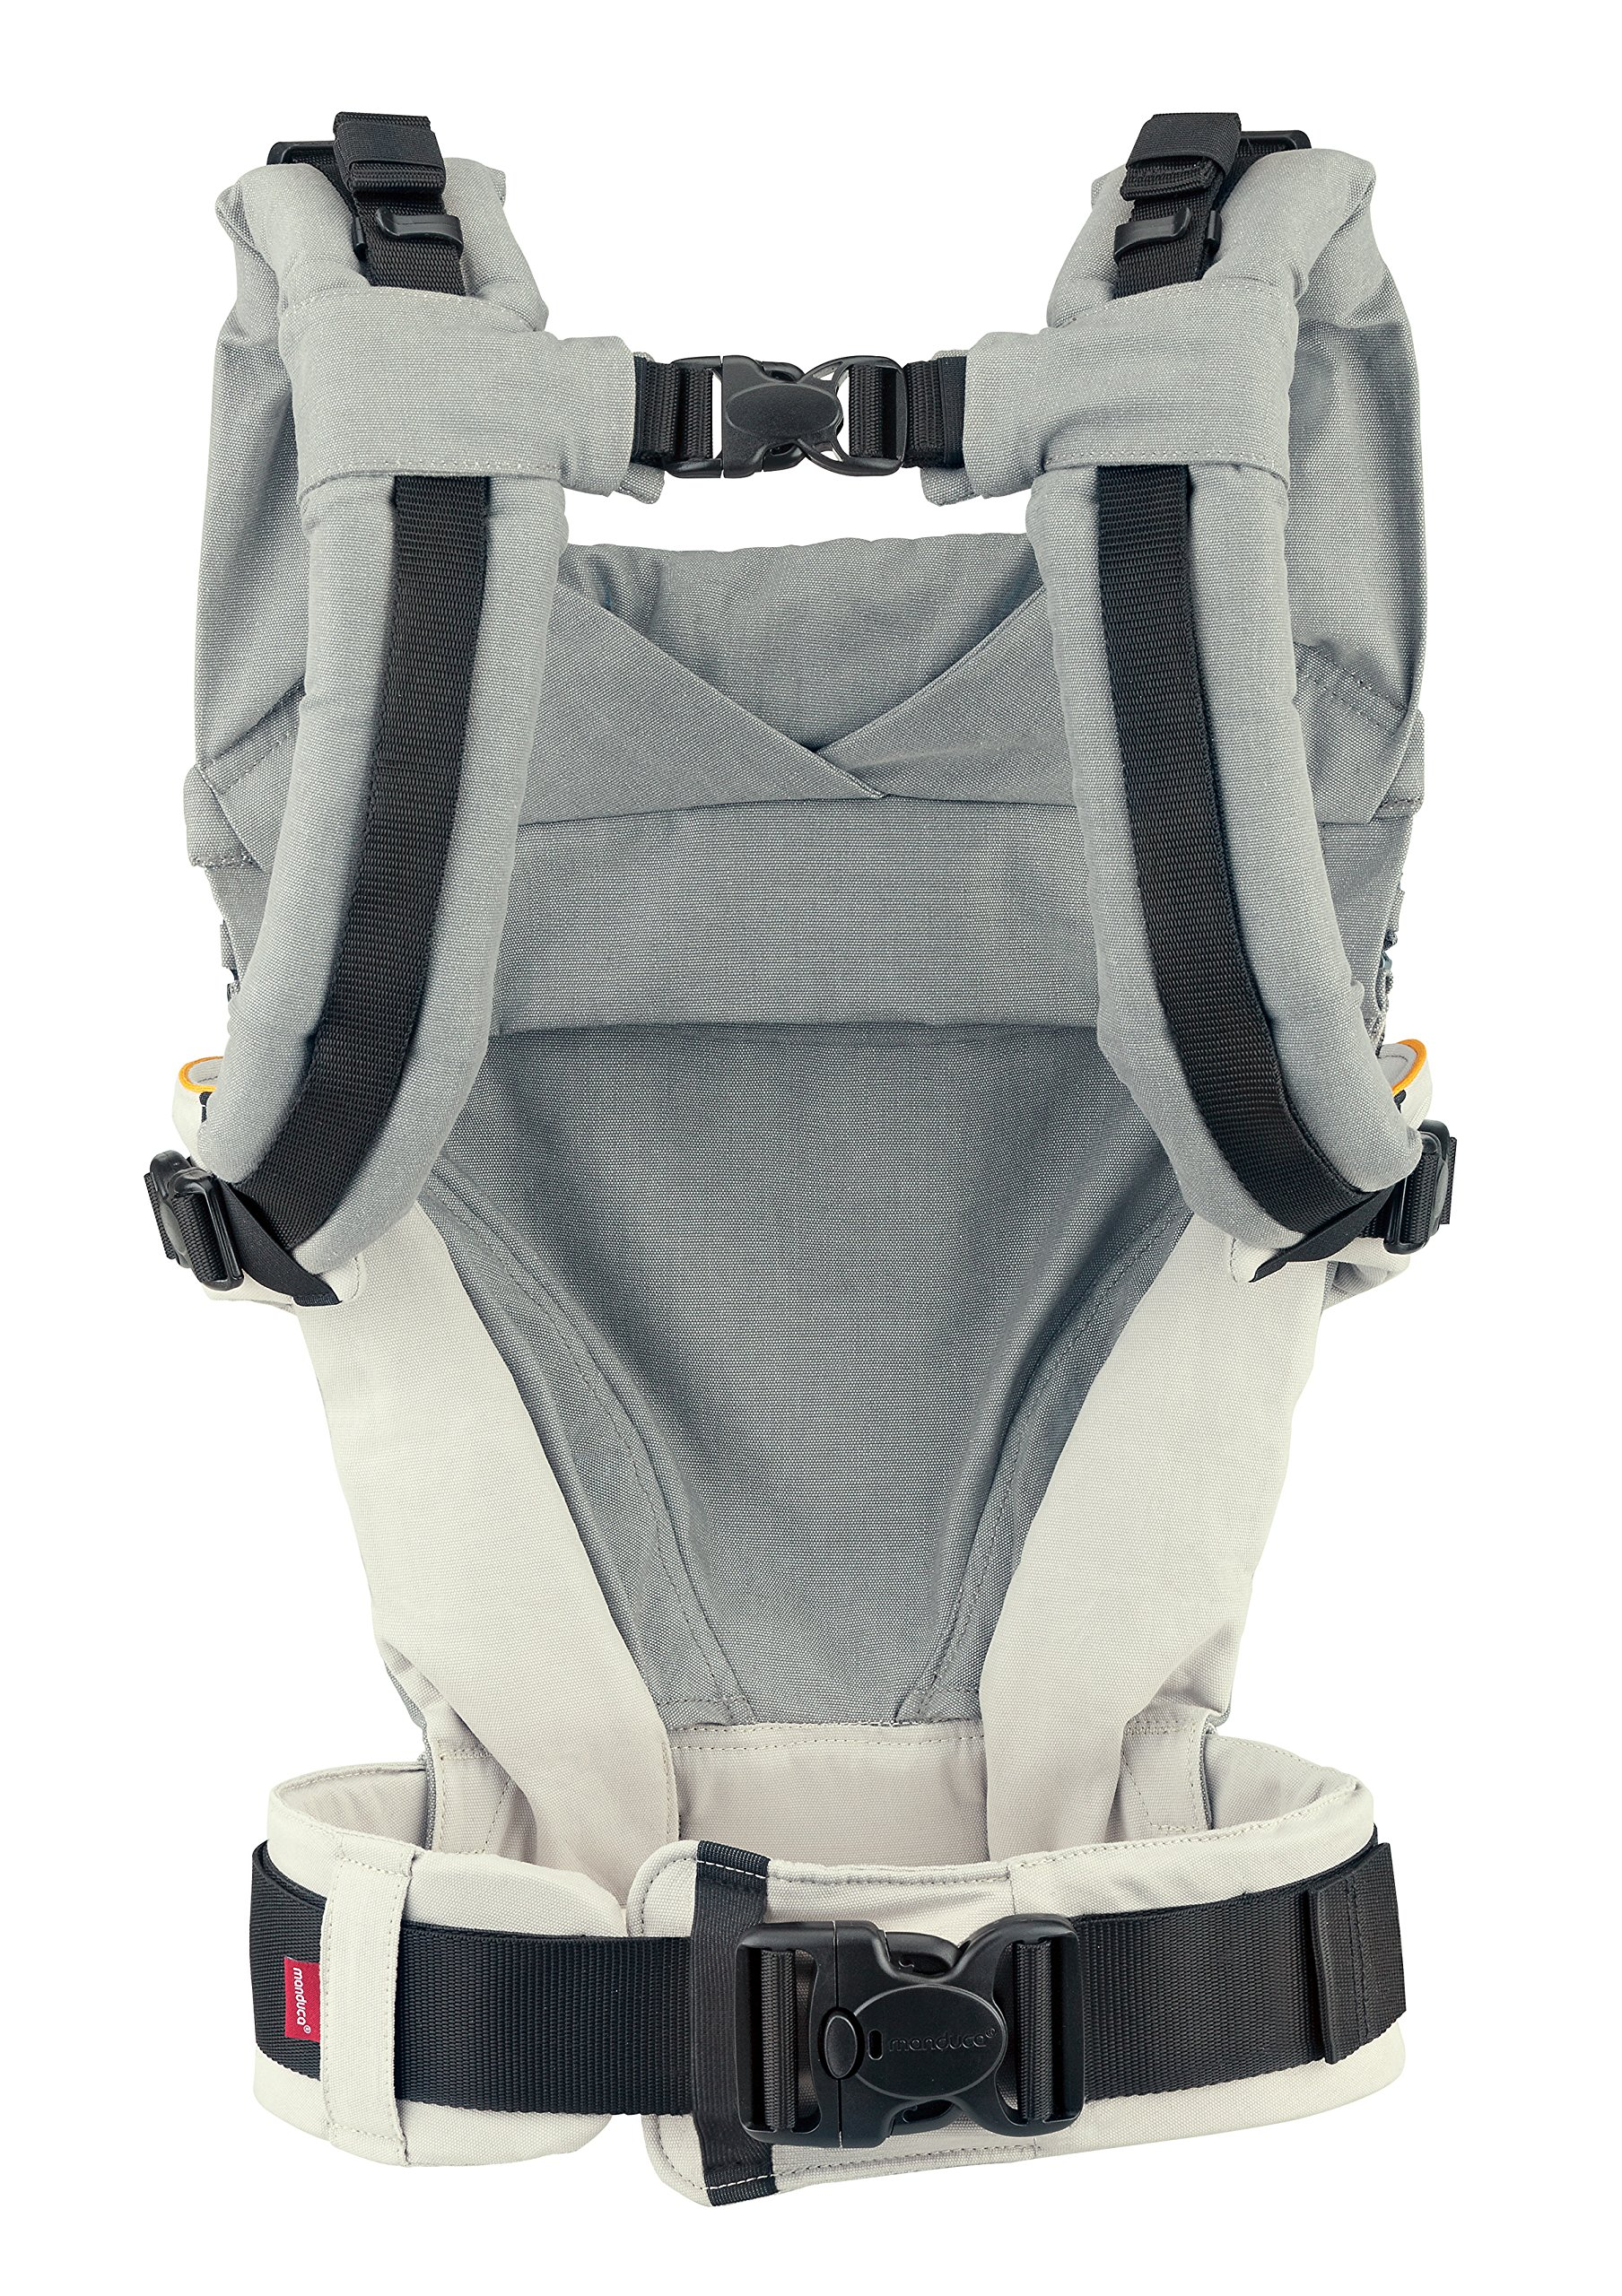 manduca XT > grey- orange < Baby Carrier with Adjustable Seat, 3 Carrying Positions (Front, Hip & Back), No Infant Insert Needed, Organic Cotton, Grows with your Baby from Birth to Toddler (3.5- 20kg) Manduca This baby carrier adapts from newborn to toddler. Infinitely adjustable seat (16-50cm) without buttons, knots, Velcro or cord system. Novel tension arches support baby's spine & hip Three height options thanks to the patented back extension & integrated zip-in. Multifunctional headrest (classic hood or rolled up as neck support). No accessories needed. One Size 3 carry positions: front, hip and back carrier. Not intended for face-out position. Supports the squat-spread position (M-Position) 8